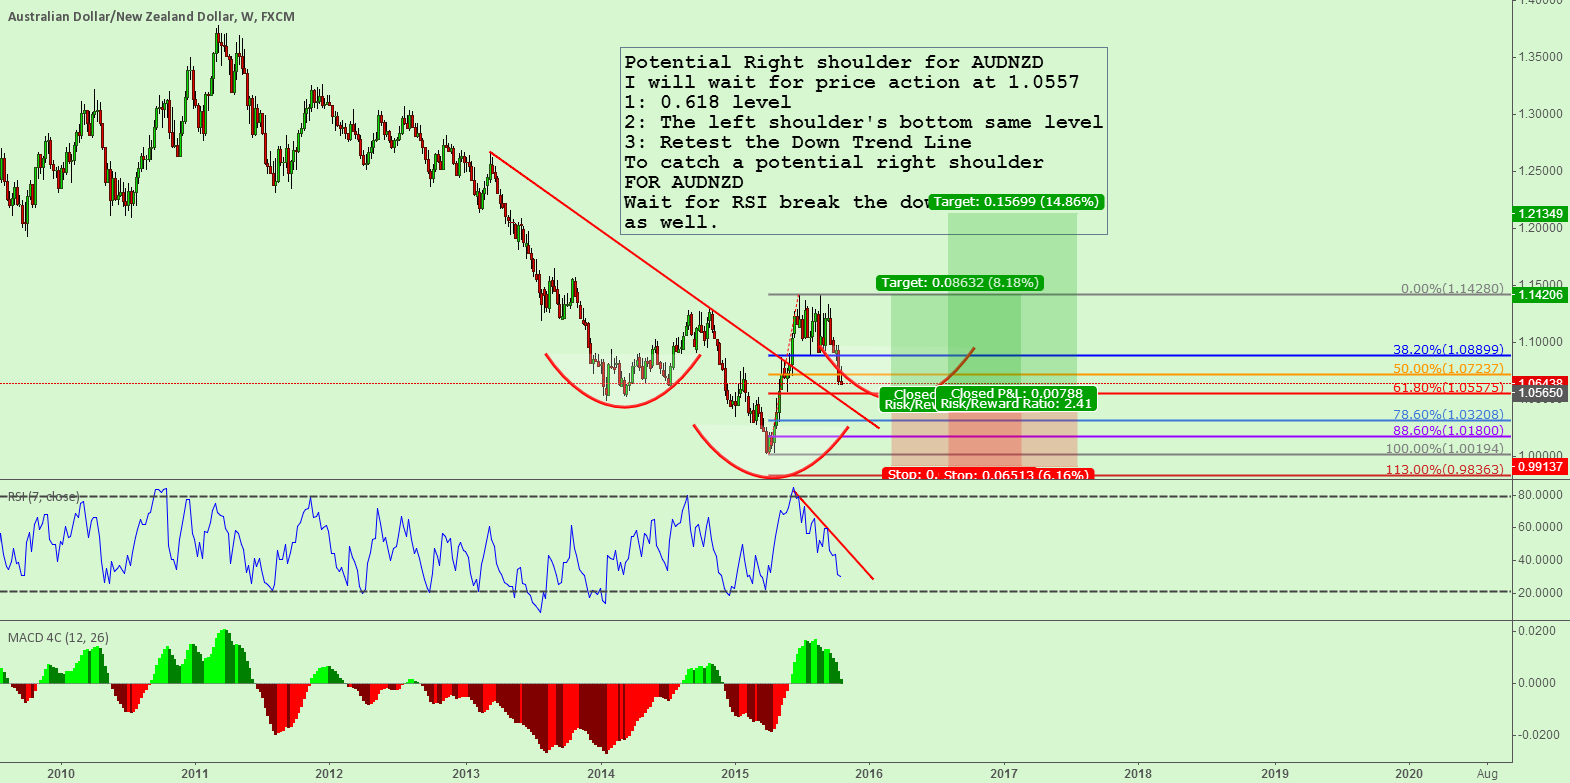 Potential Right shoulder for AUDNZD (Weekly)